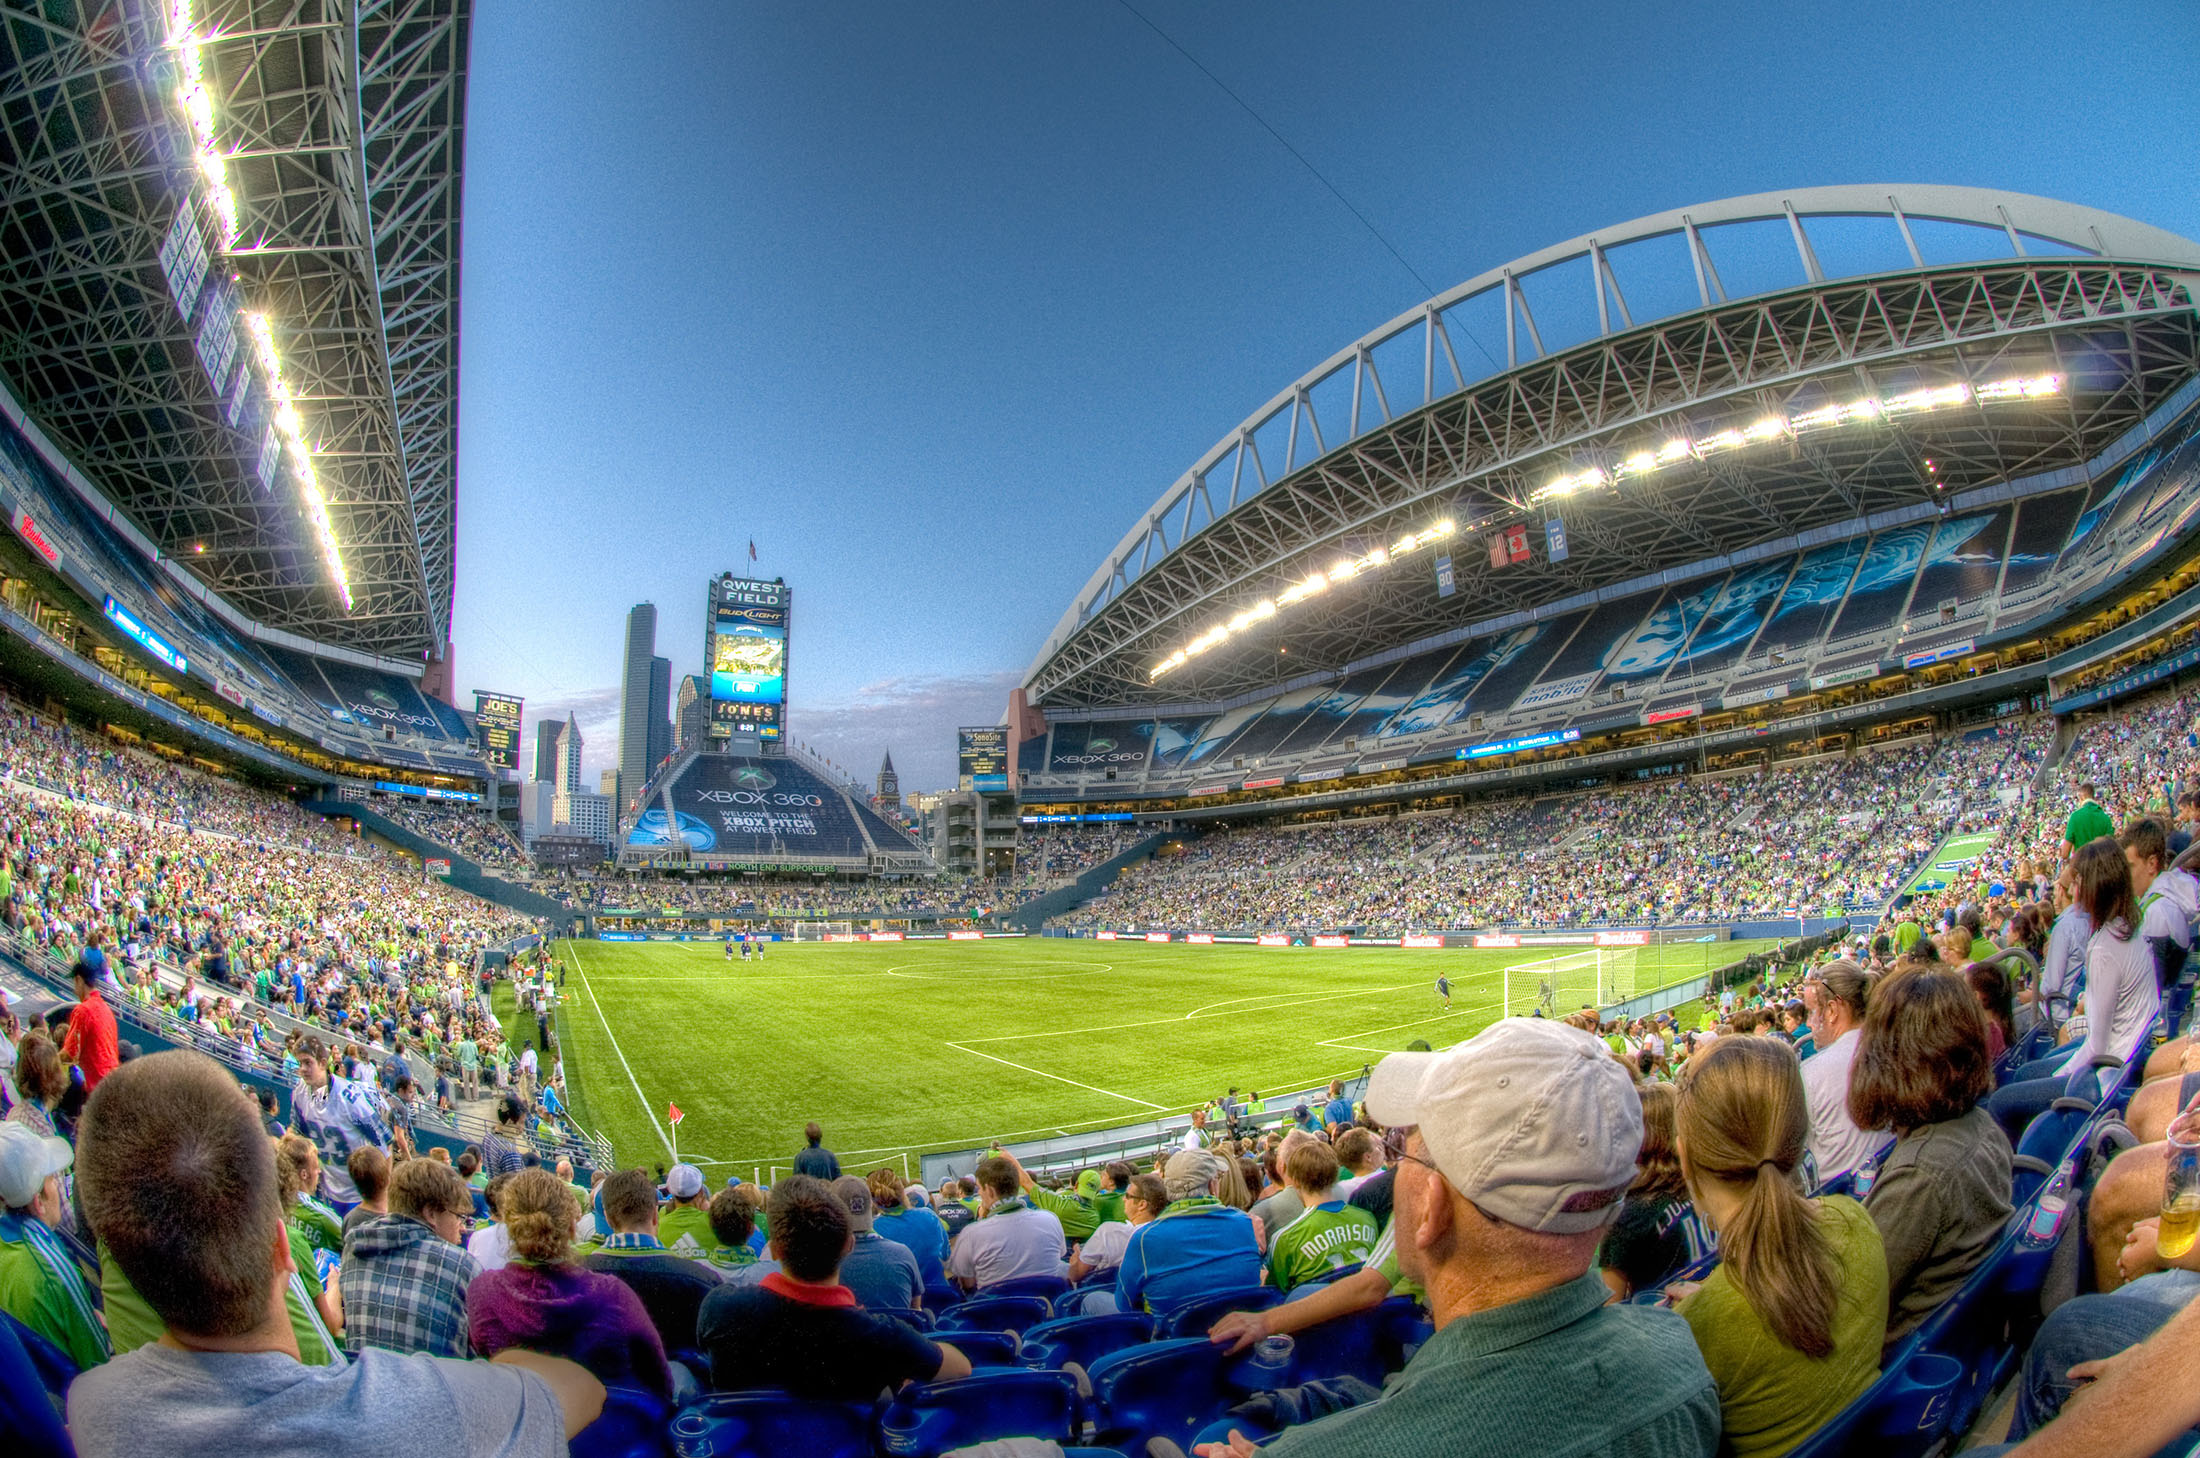 SEATTLE LOVES SPORTS, This year we welcome our newest pro team, the NHL's Kraken, who join the Mariners (baseball), Sounders and Reign (soccer), the 2014 Super Bowl–winning Seahawks and four-time WNBA champions Seattle Storm.